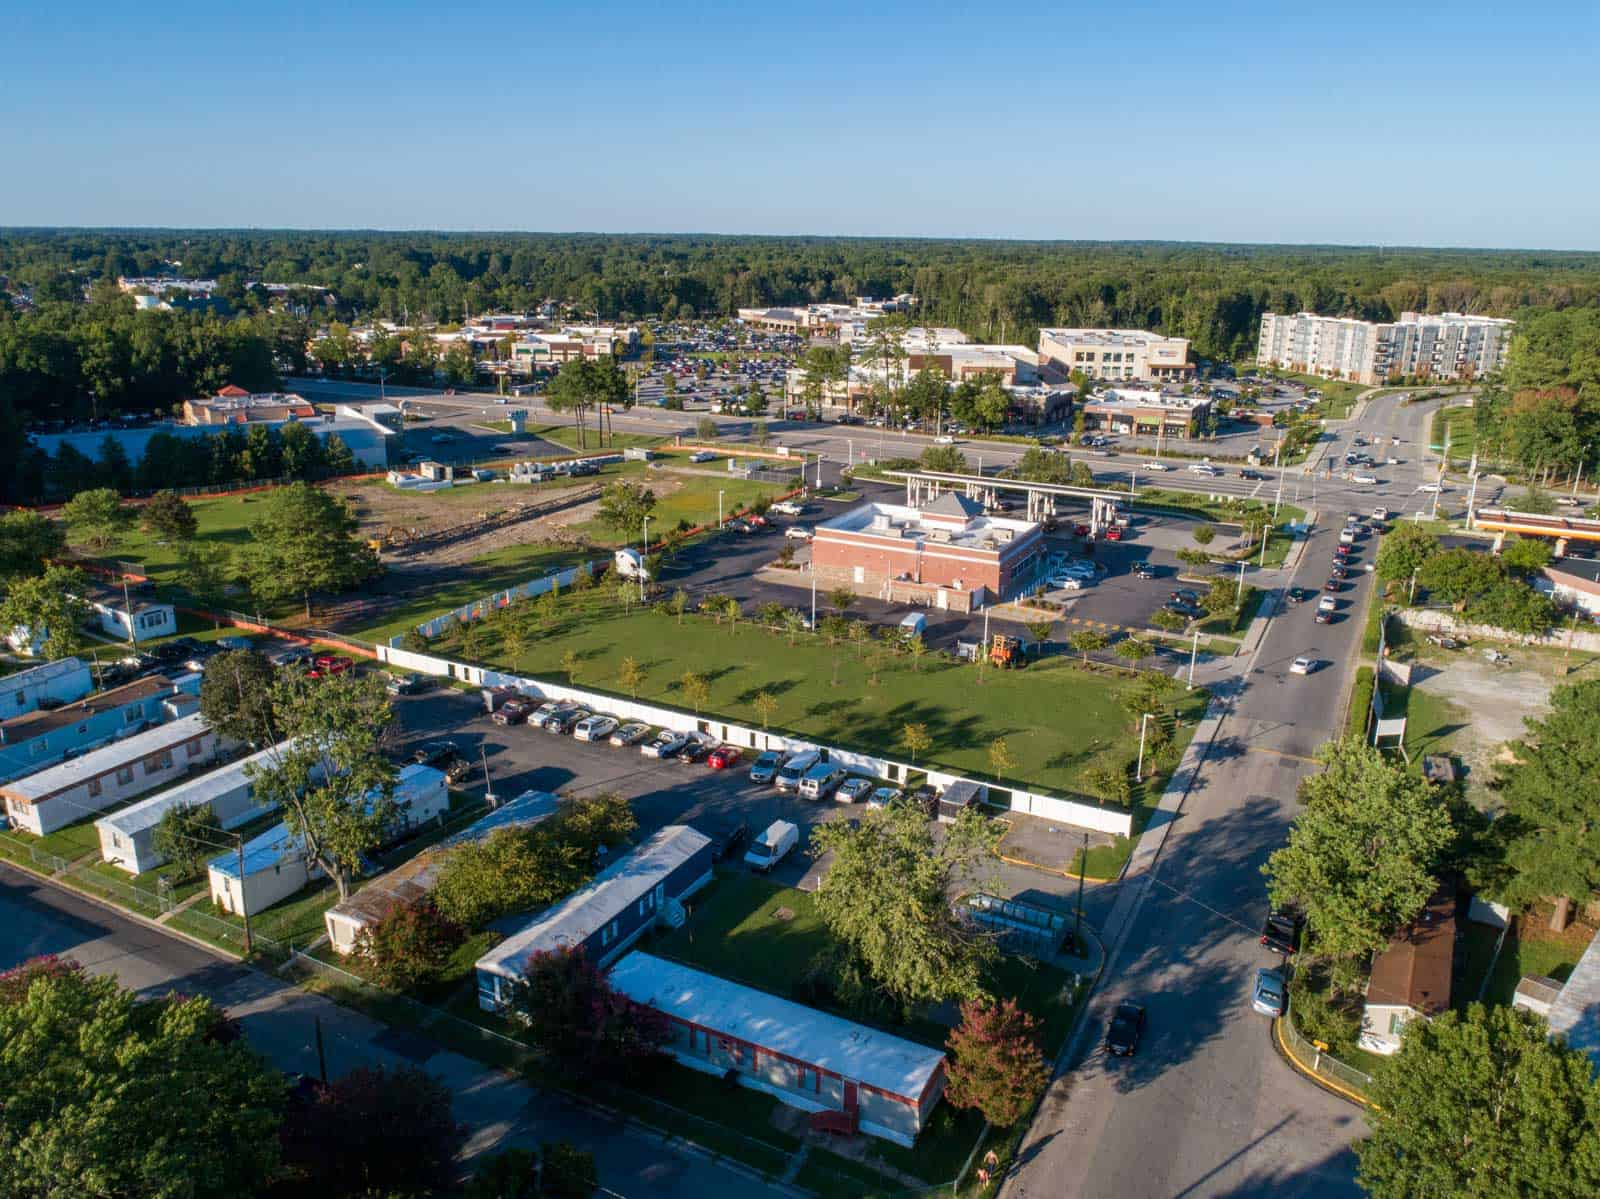 aerial drone photo of commercial real estate property taken above mobile homes in Newport News, VA